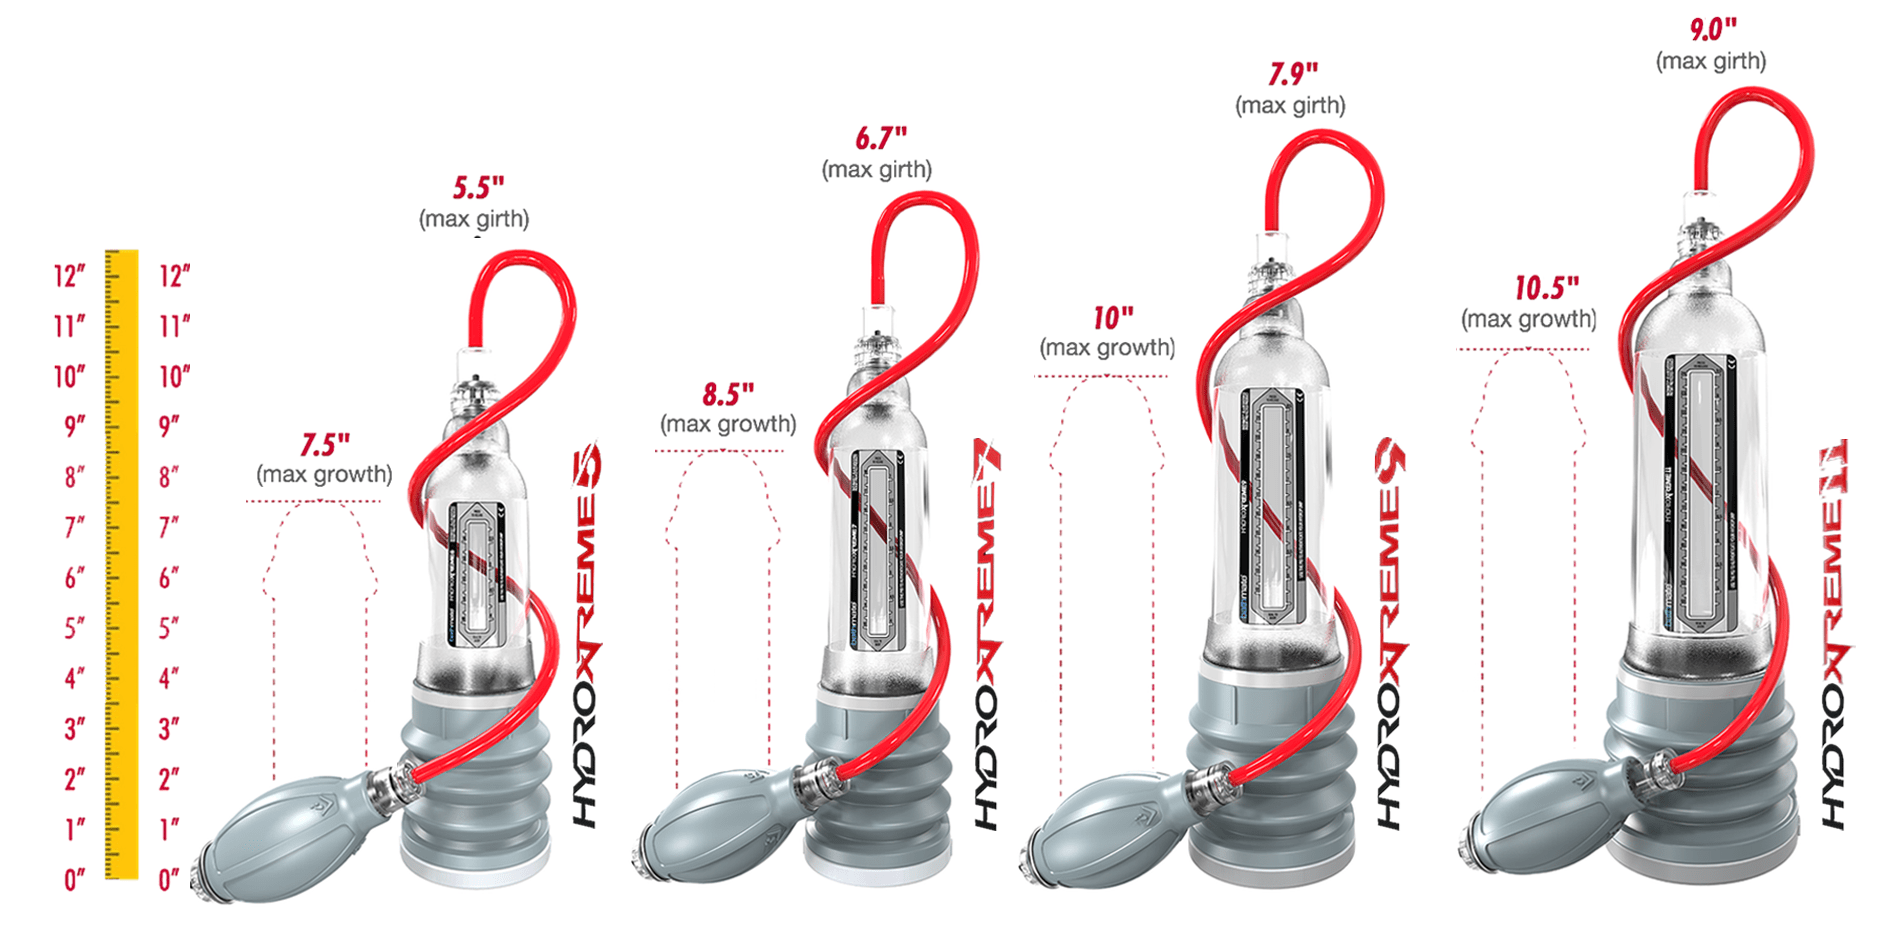 hydroxtreme size guide